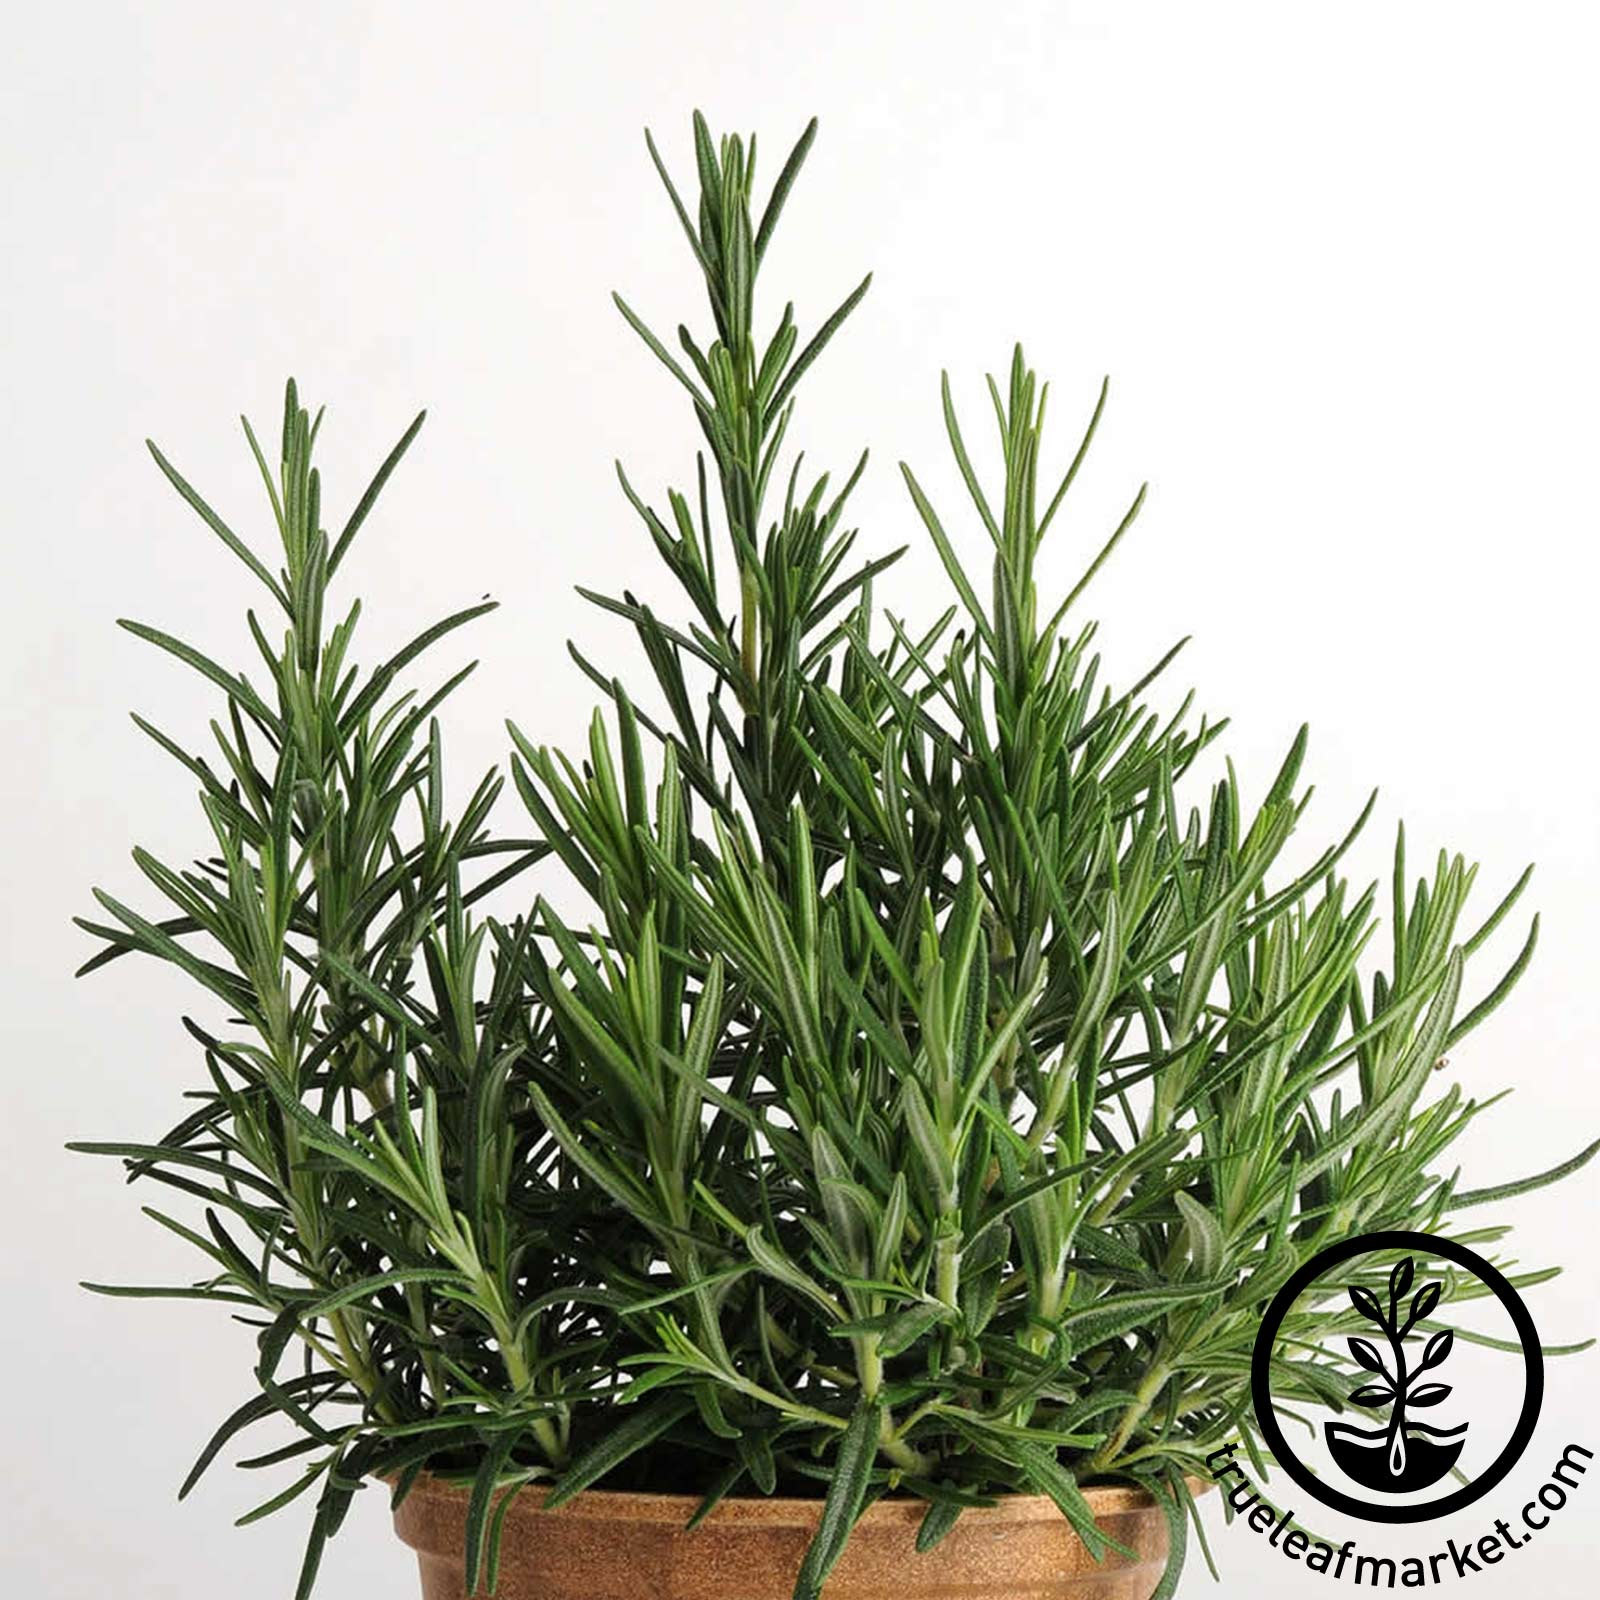 Rosemary Herb Growing Seeds